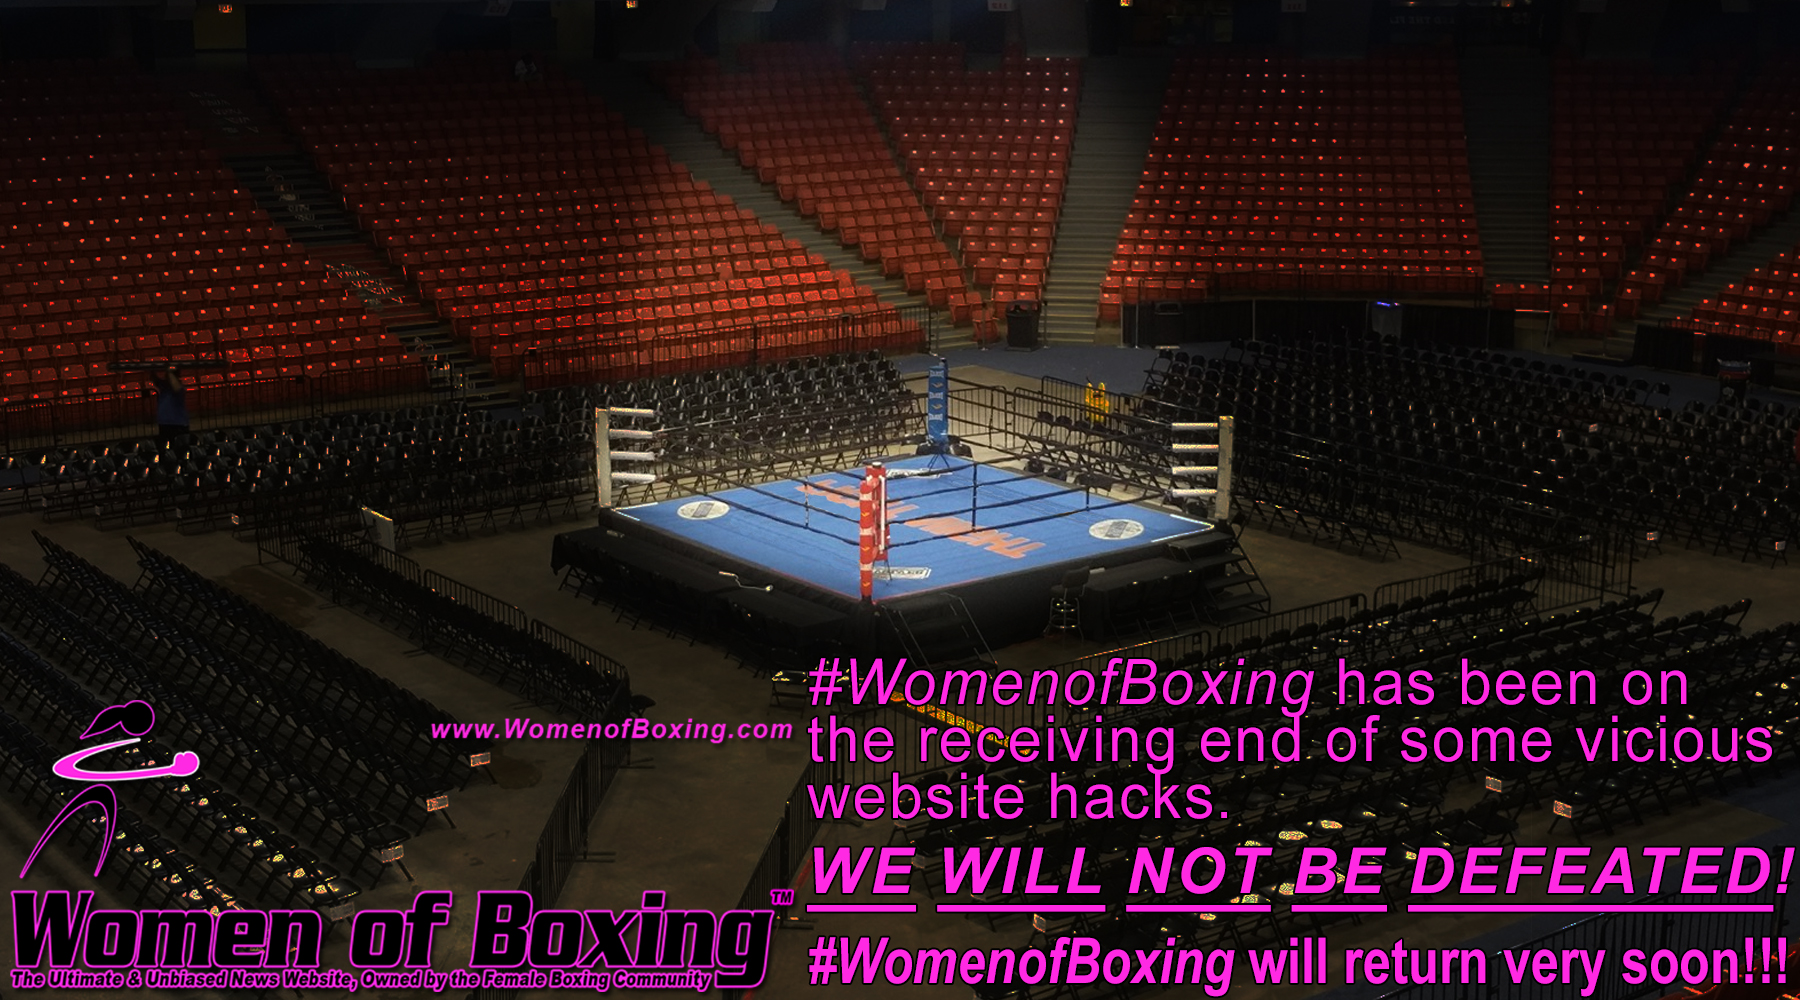 #WomenofBoxing will not be defeated! #WomenofBoxing to return soon!